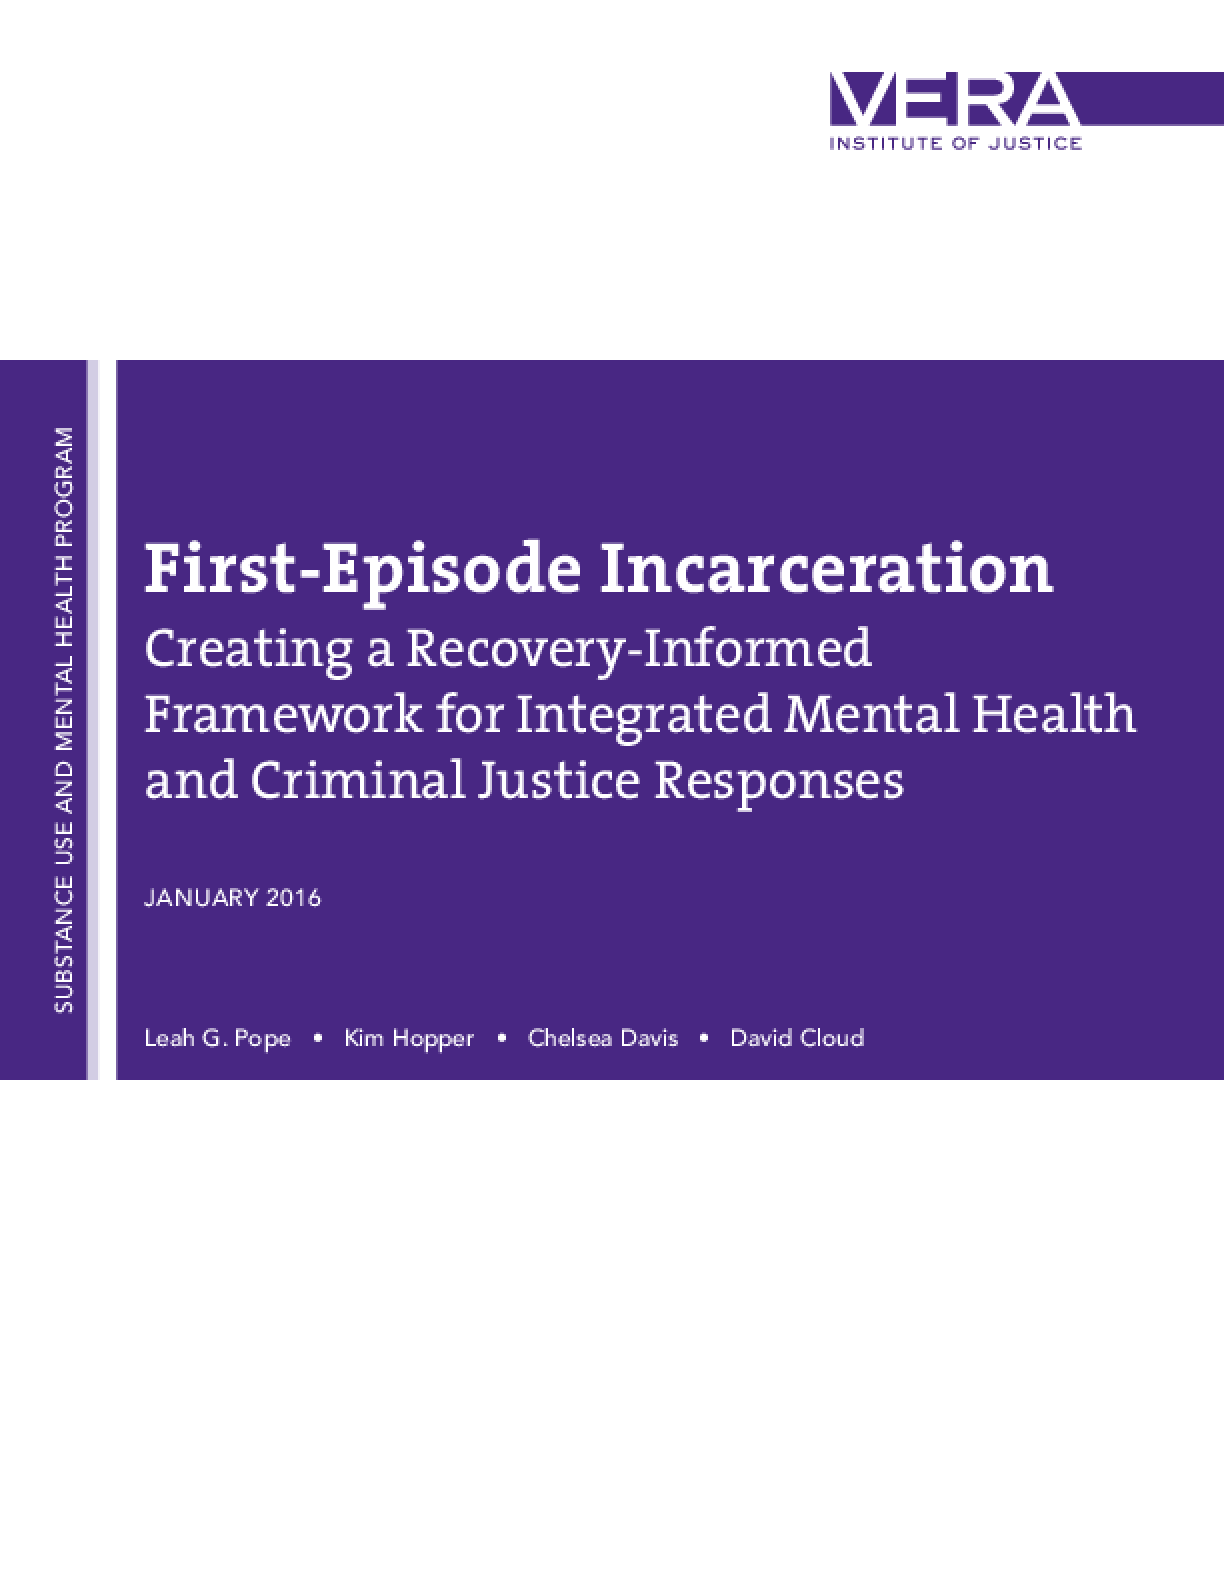 First-Episode Incarceration: Creating a Recovery-Informed Framework for Integrated Mental Health and Criminal Justice Responses